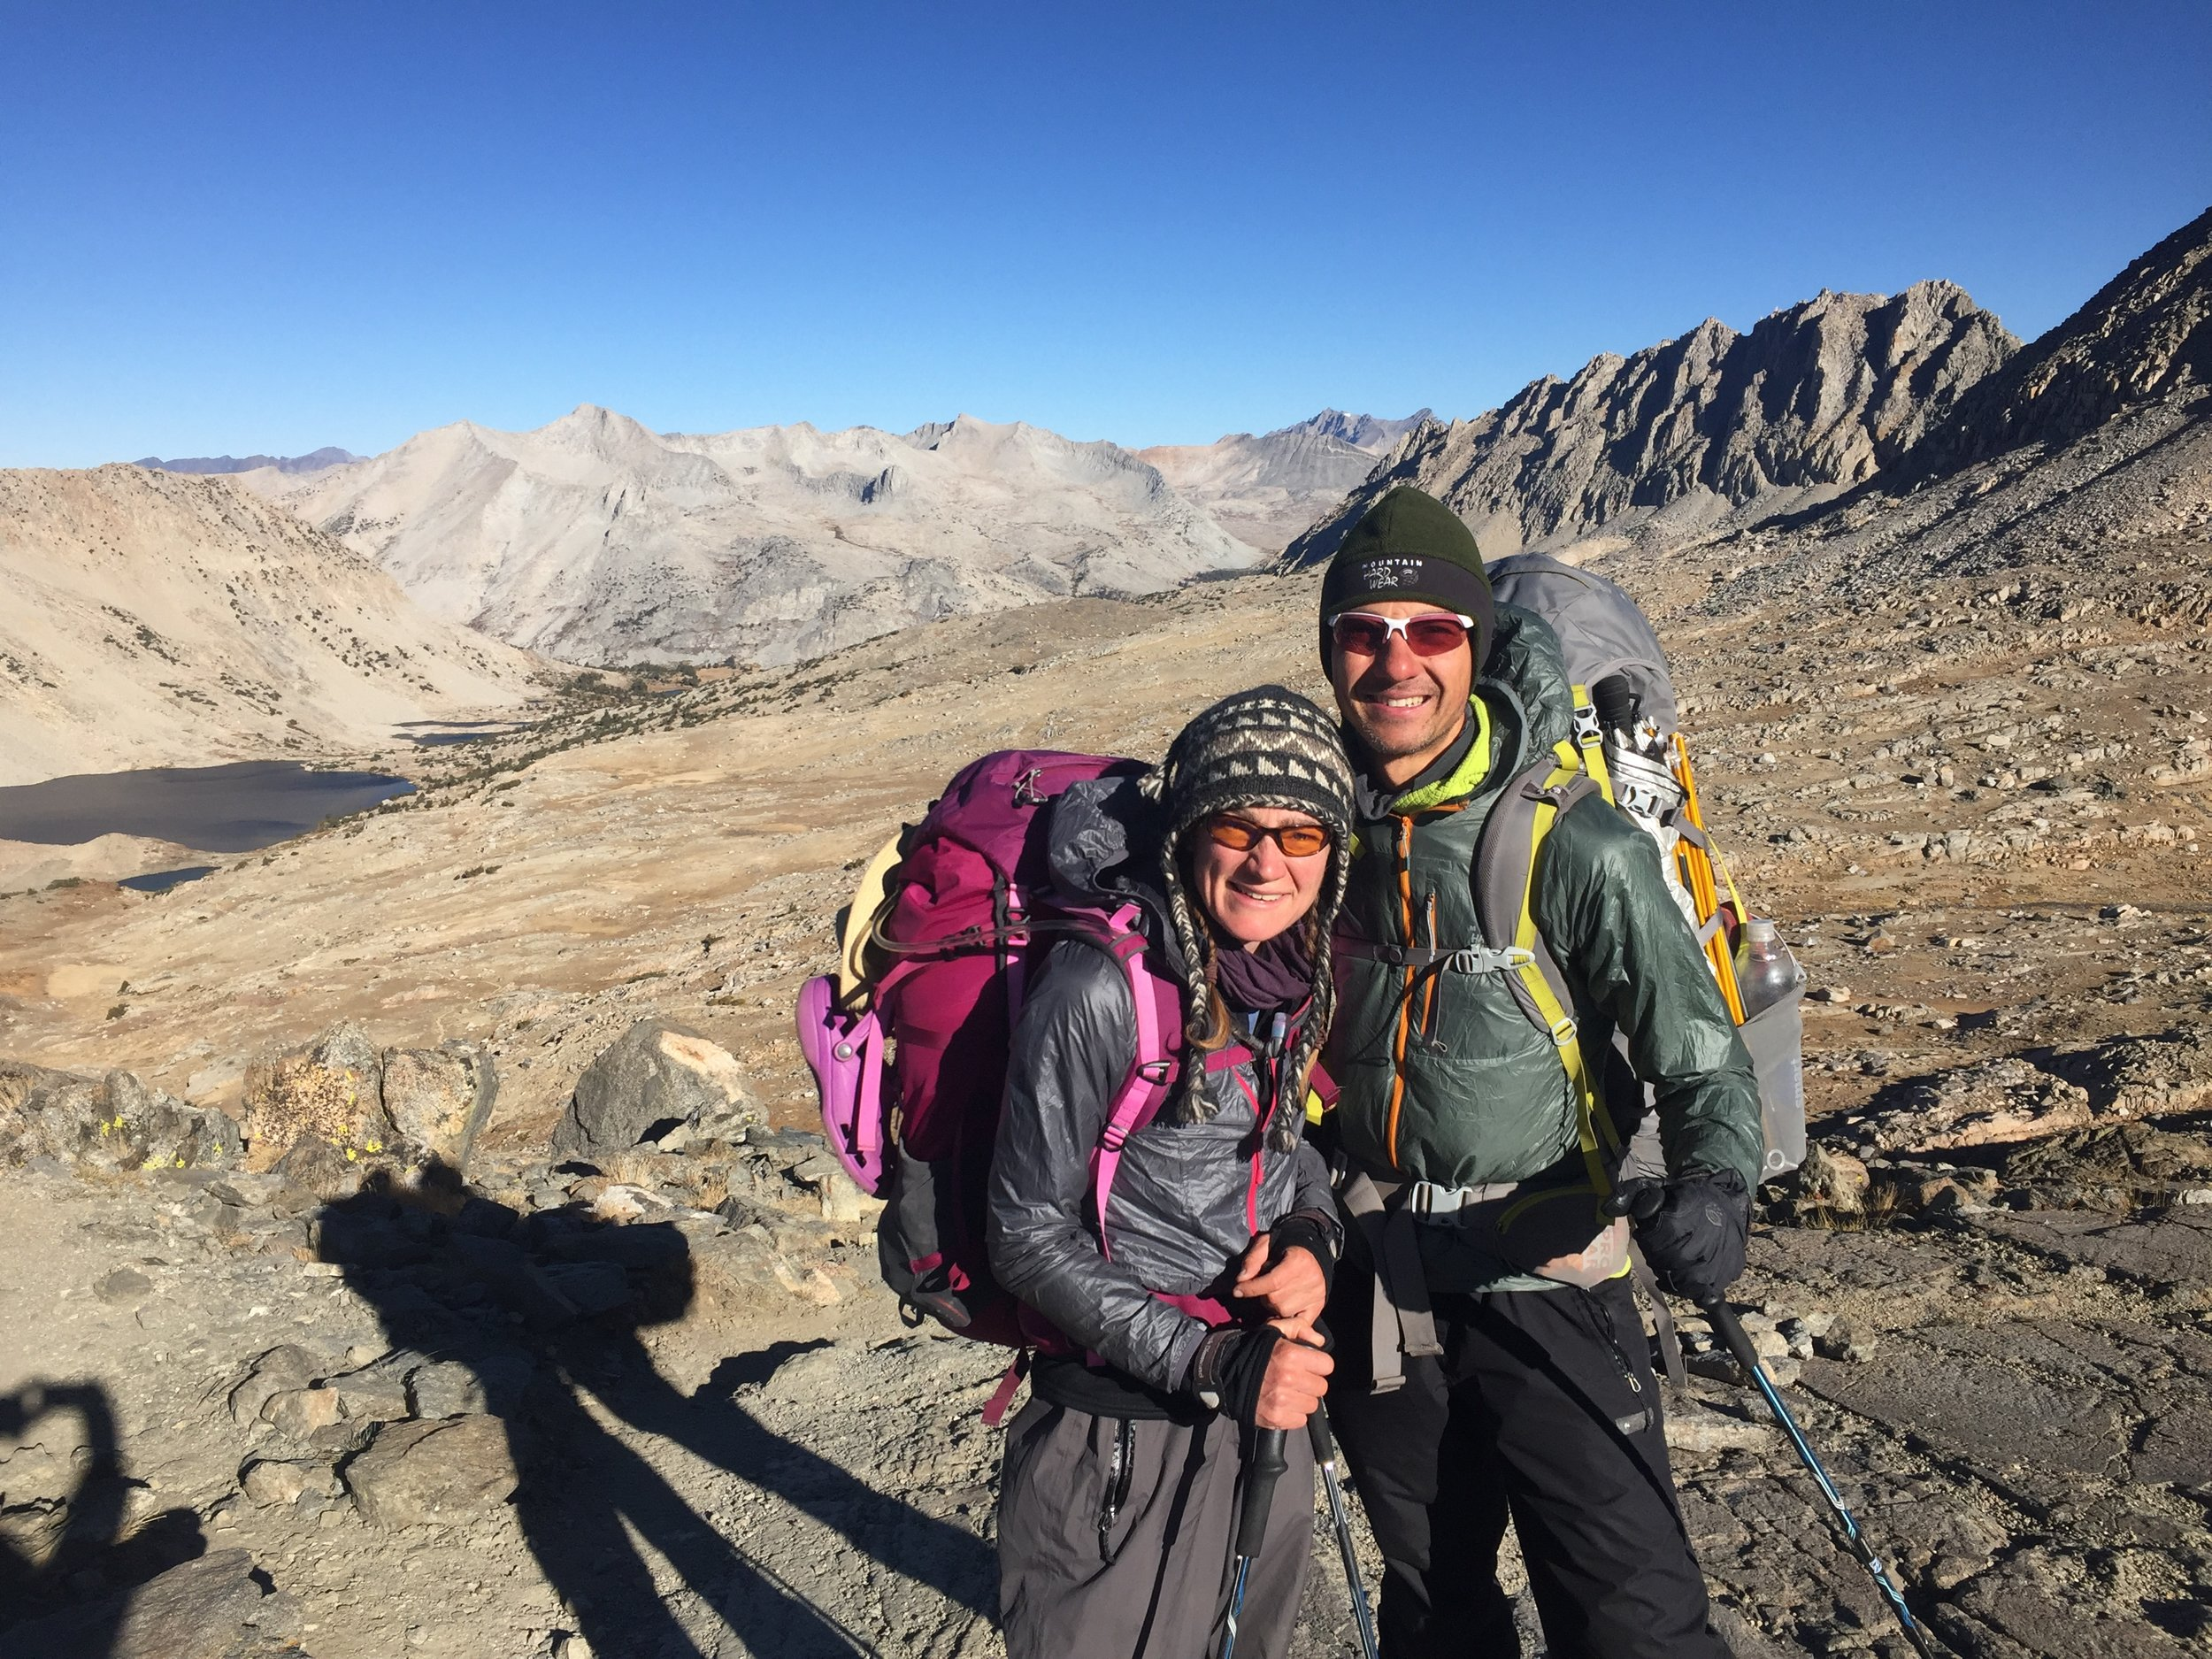 This is October in the high country. Despite the stiff climb and full sun at Pinchot Pass, the wind is cold and strong and we are still wearing every layer we have except for down jackets. (PC: random backpacker)